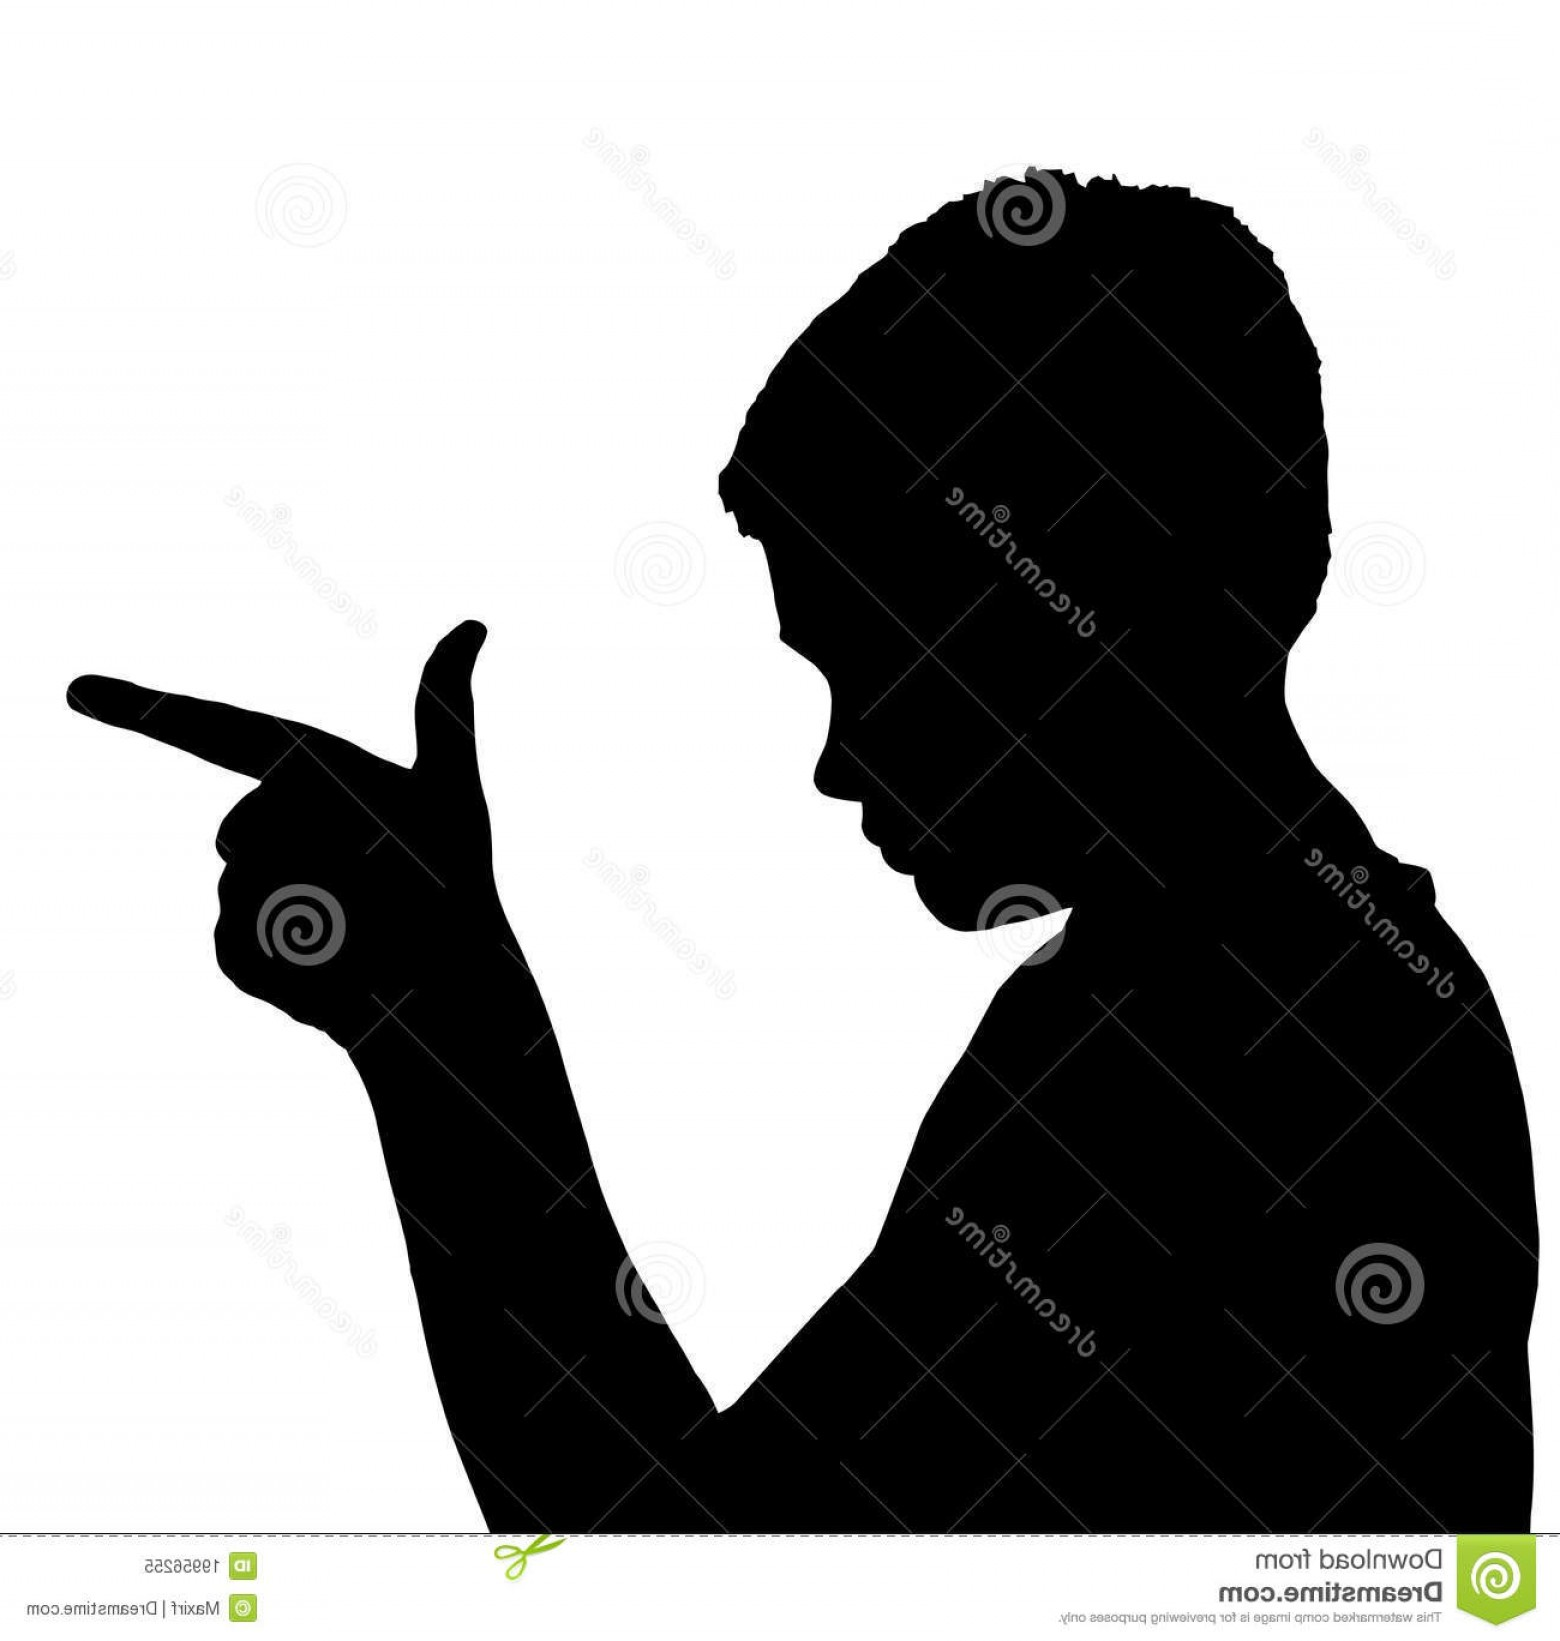 Finger Gun To Head Vector: Royalty Free Stock Photo Isolated Boy Child Gesture Gun Finger Image